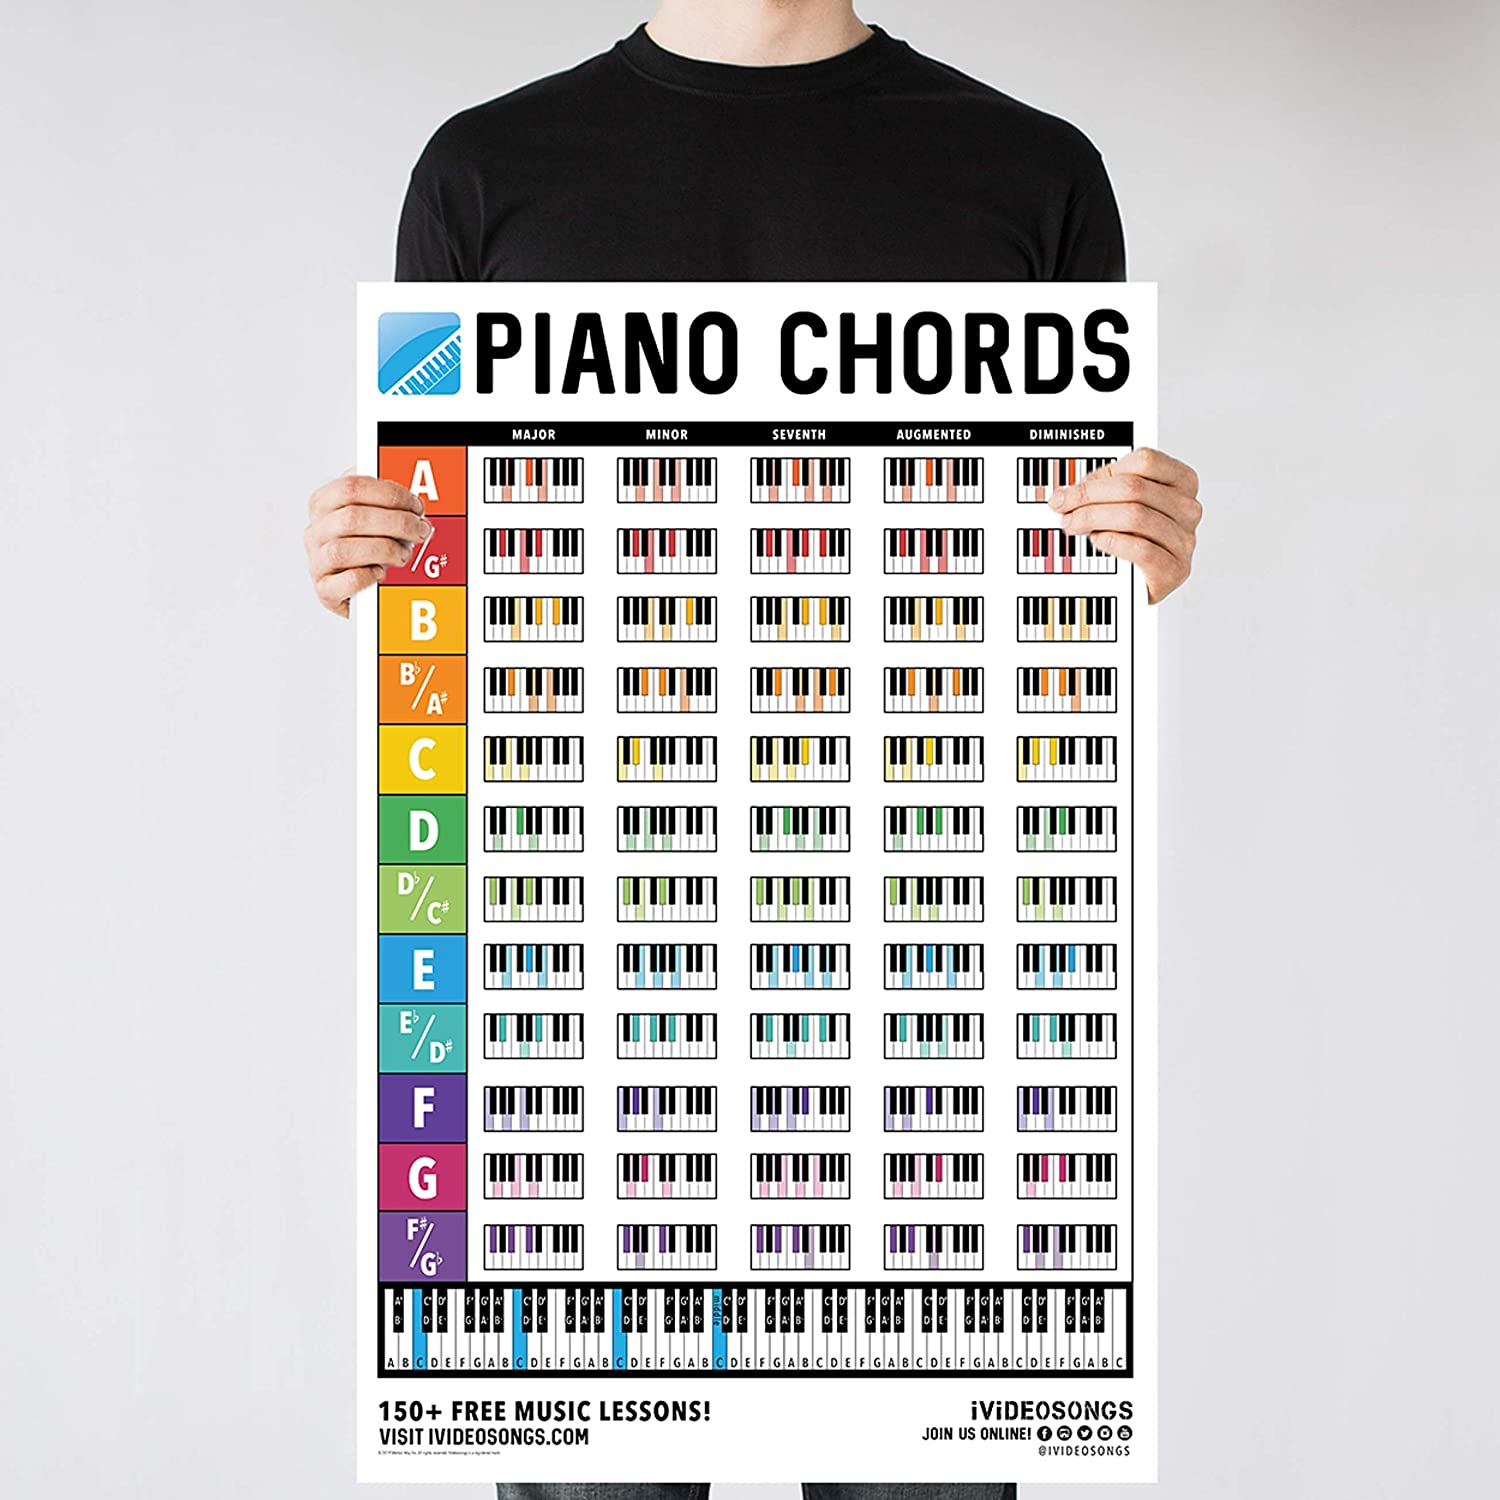 IVIDEOSONGS Large Piano Chords Chart Poster 15